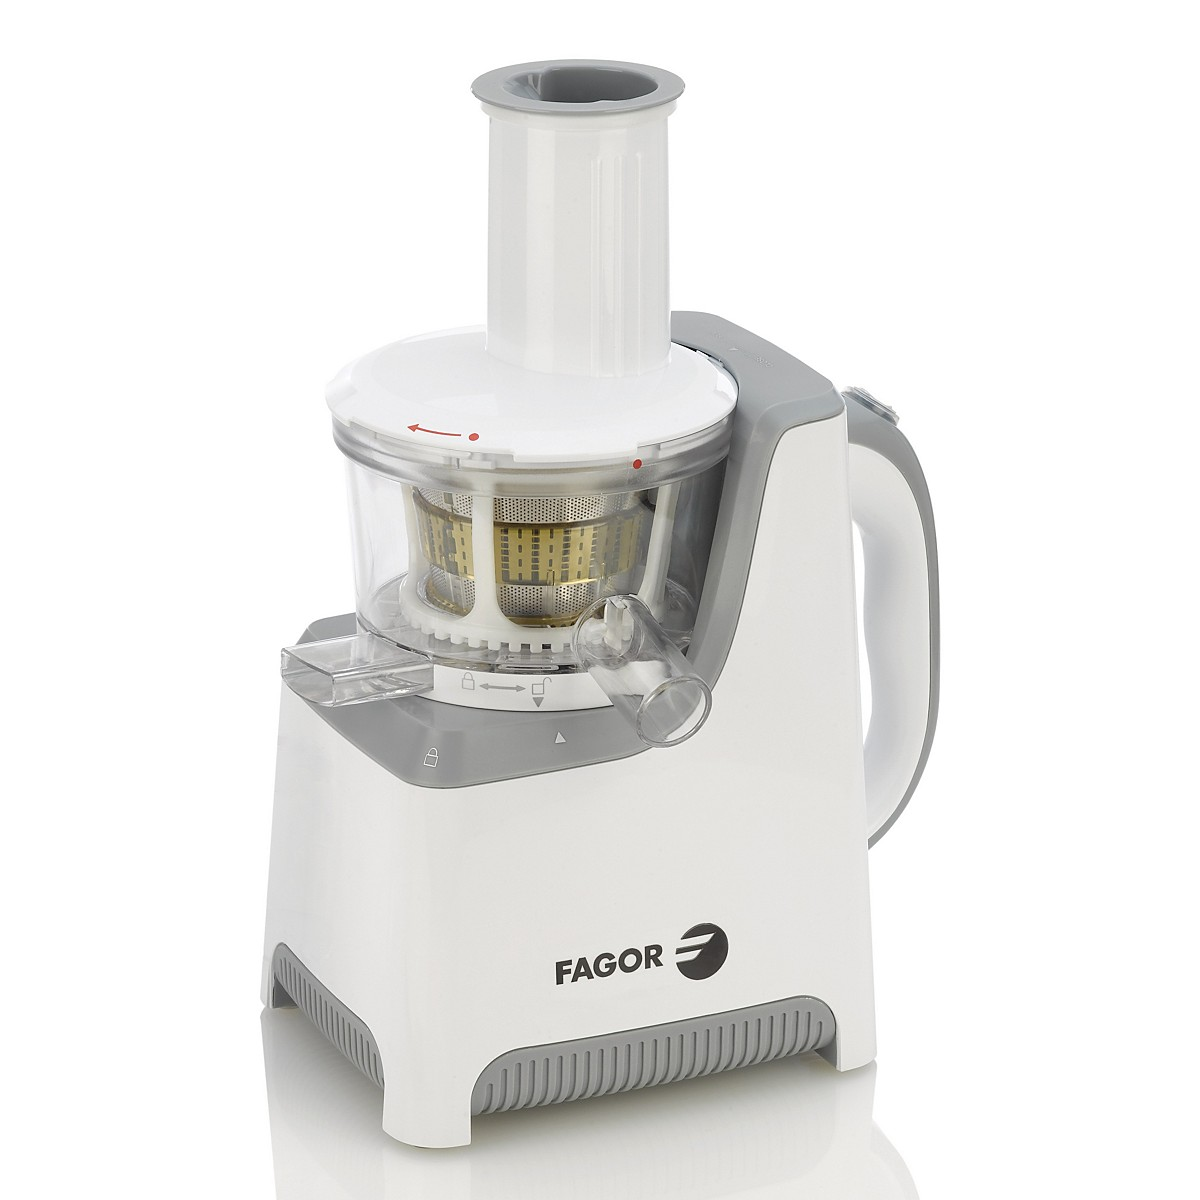 Slow Juicer Bosch Test : Fagor Slow Juicer - Spoil the Cook